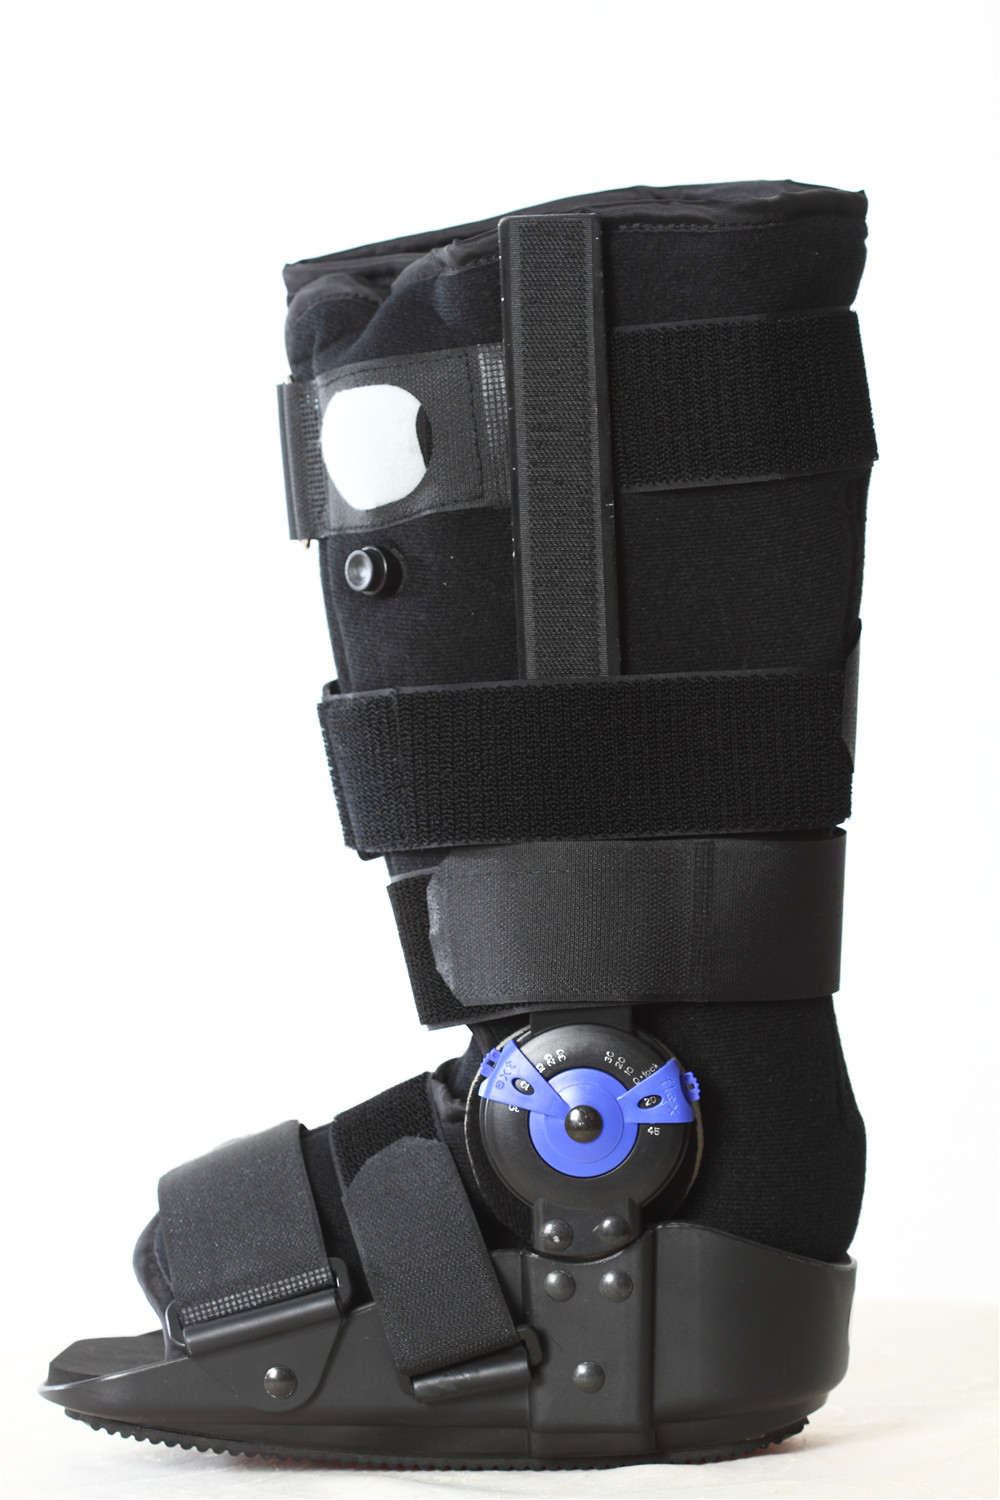 HKJD Comfortable CAM Walking Boot Foot Brace Ankle Boot Ankle Walker Bone Care Release Pain from Illness 10 4 inch for nl8060bc26 10 nl8060bc26 10 lcd module lcd panel display free shipping